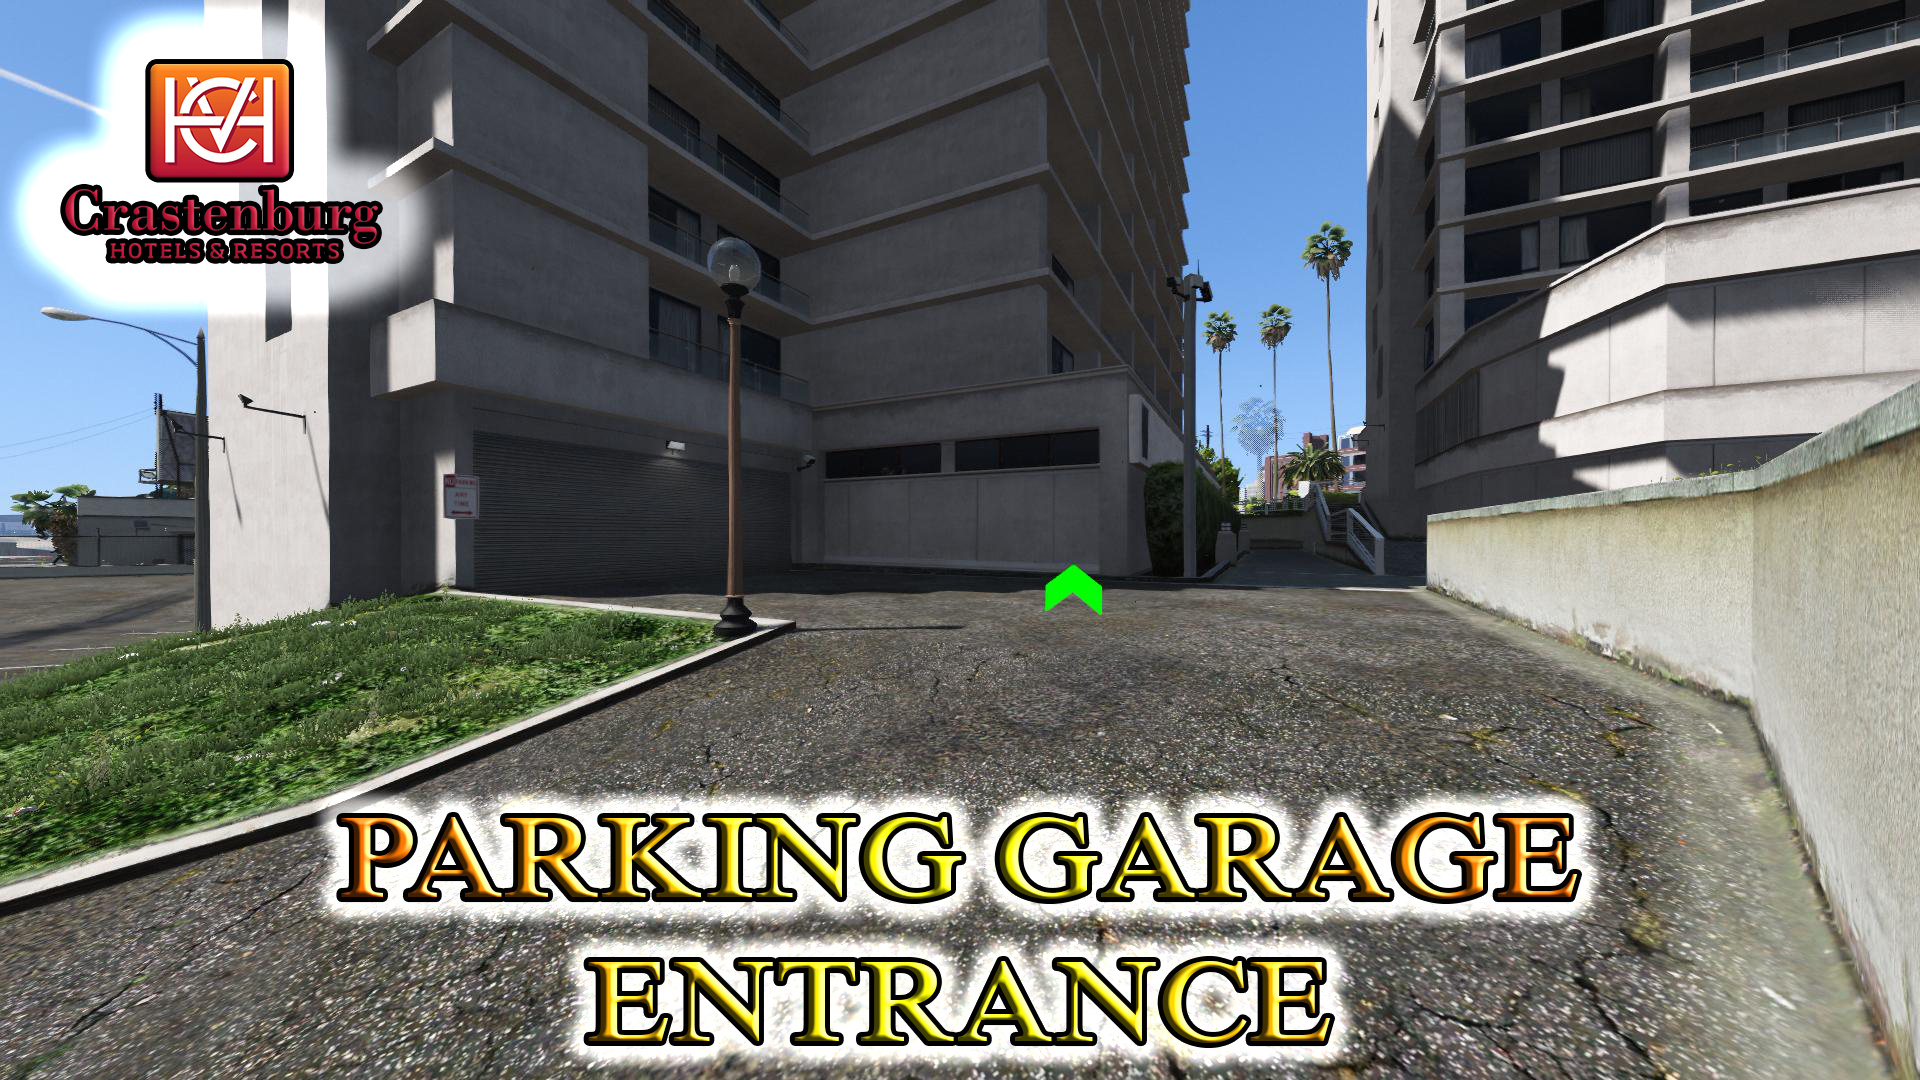 von crastenburg h r apartment 12b gta5 mods com rh de gta5 mods com